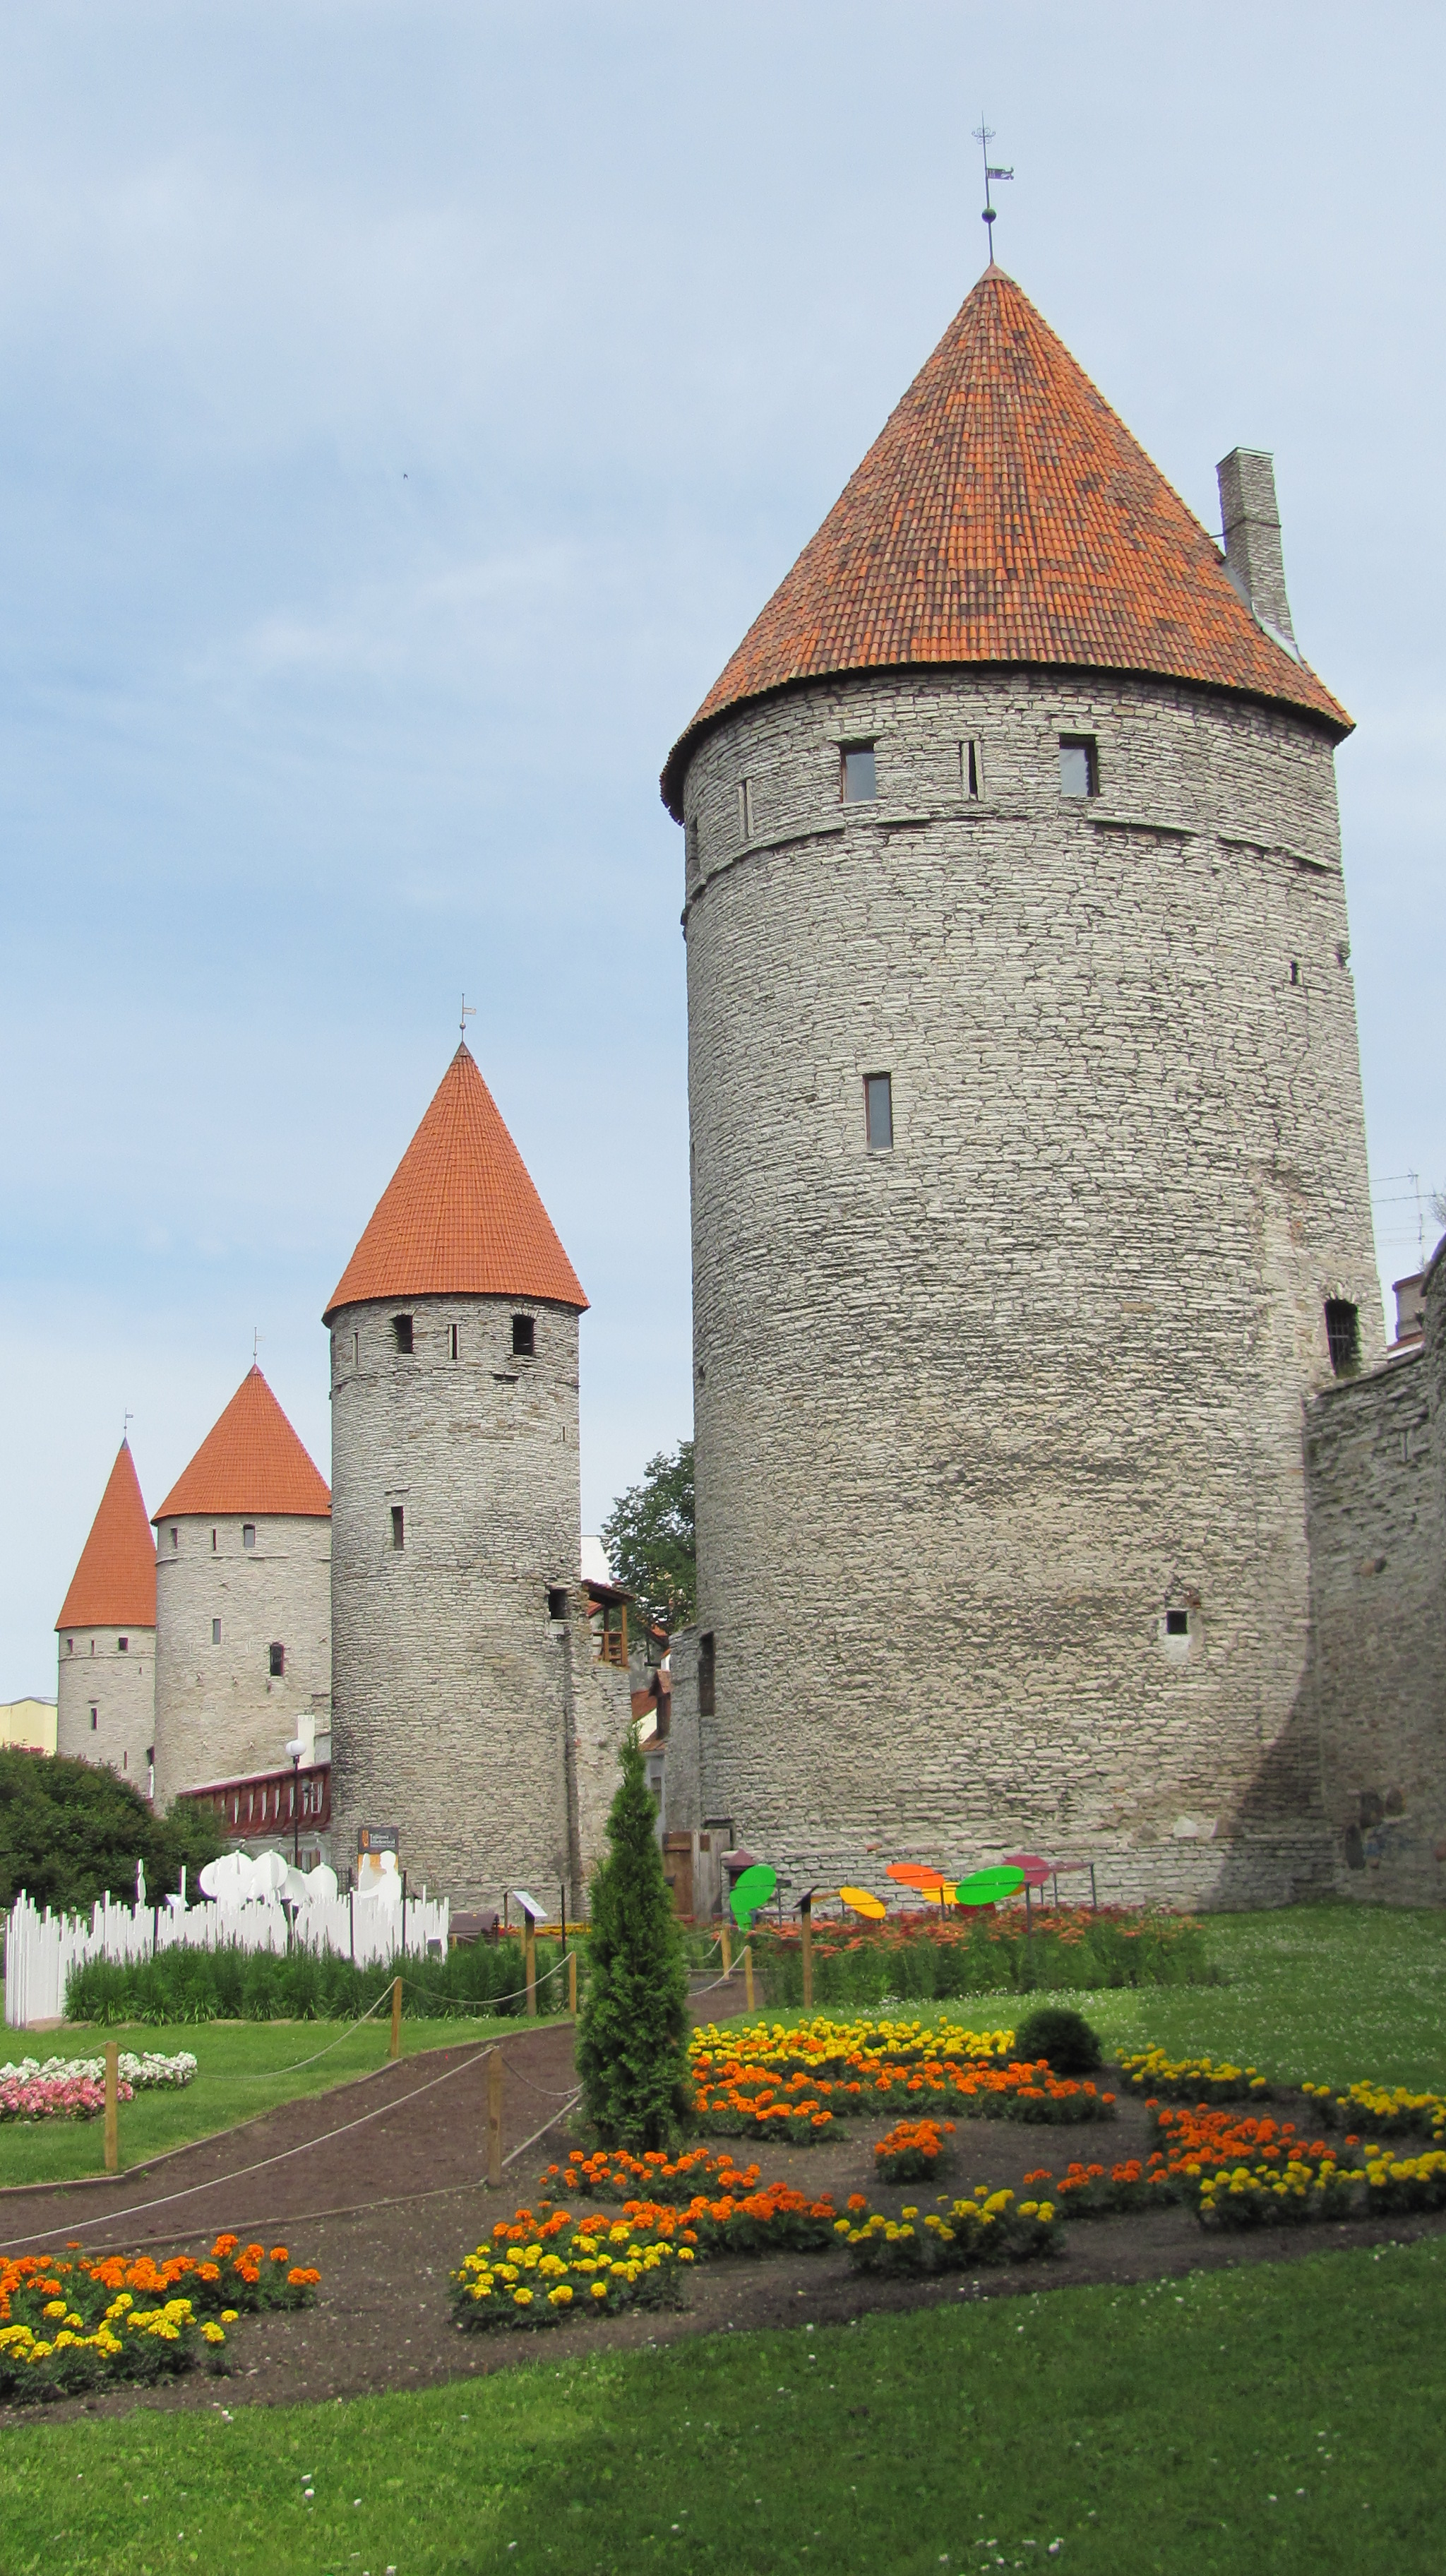 Towers & Walls of Tallinn